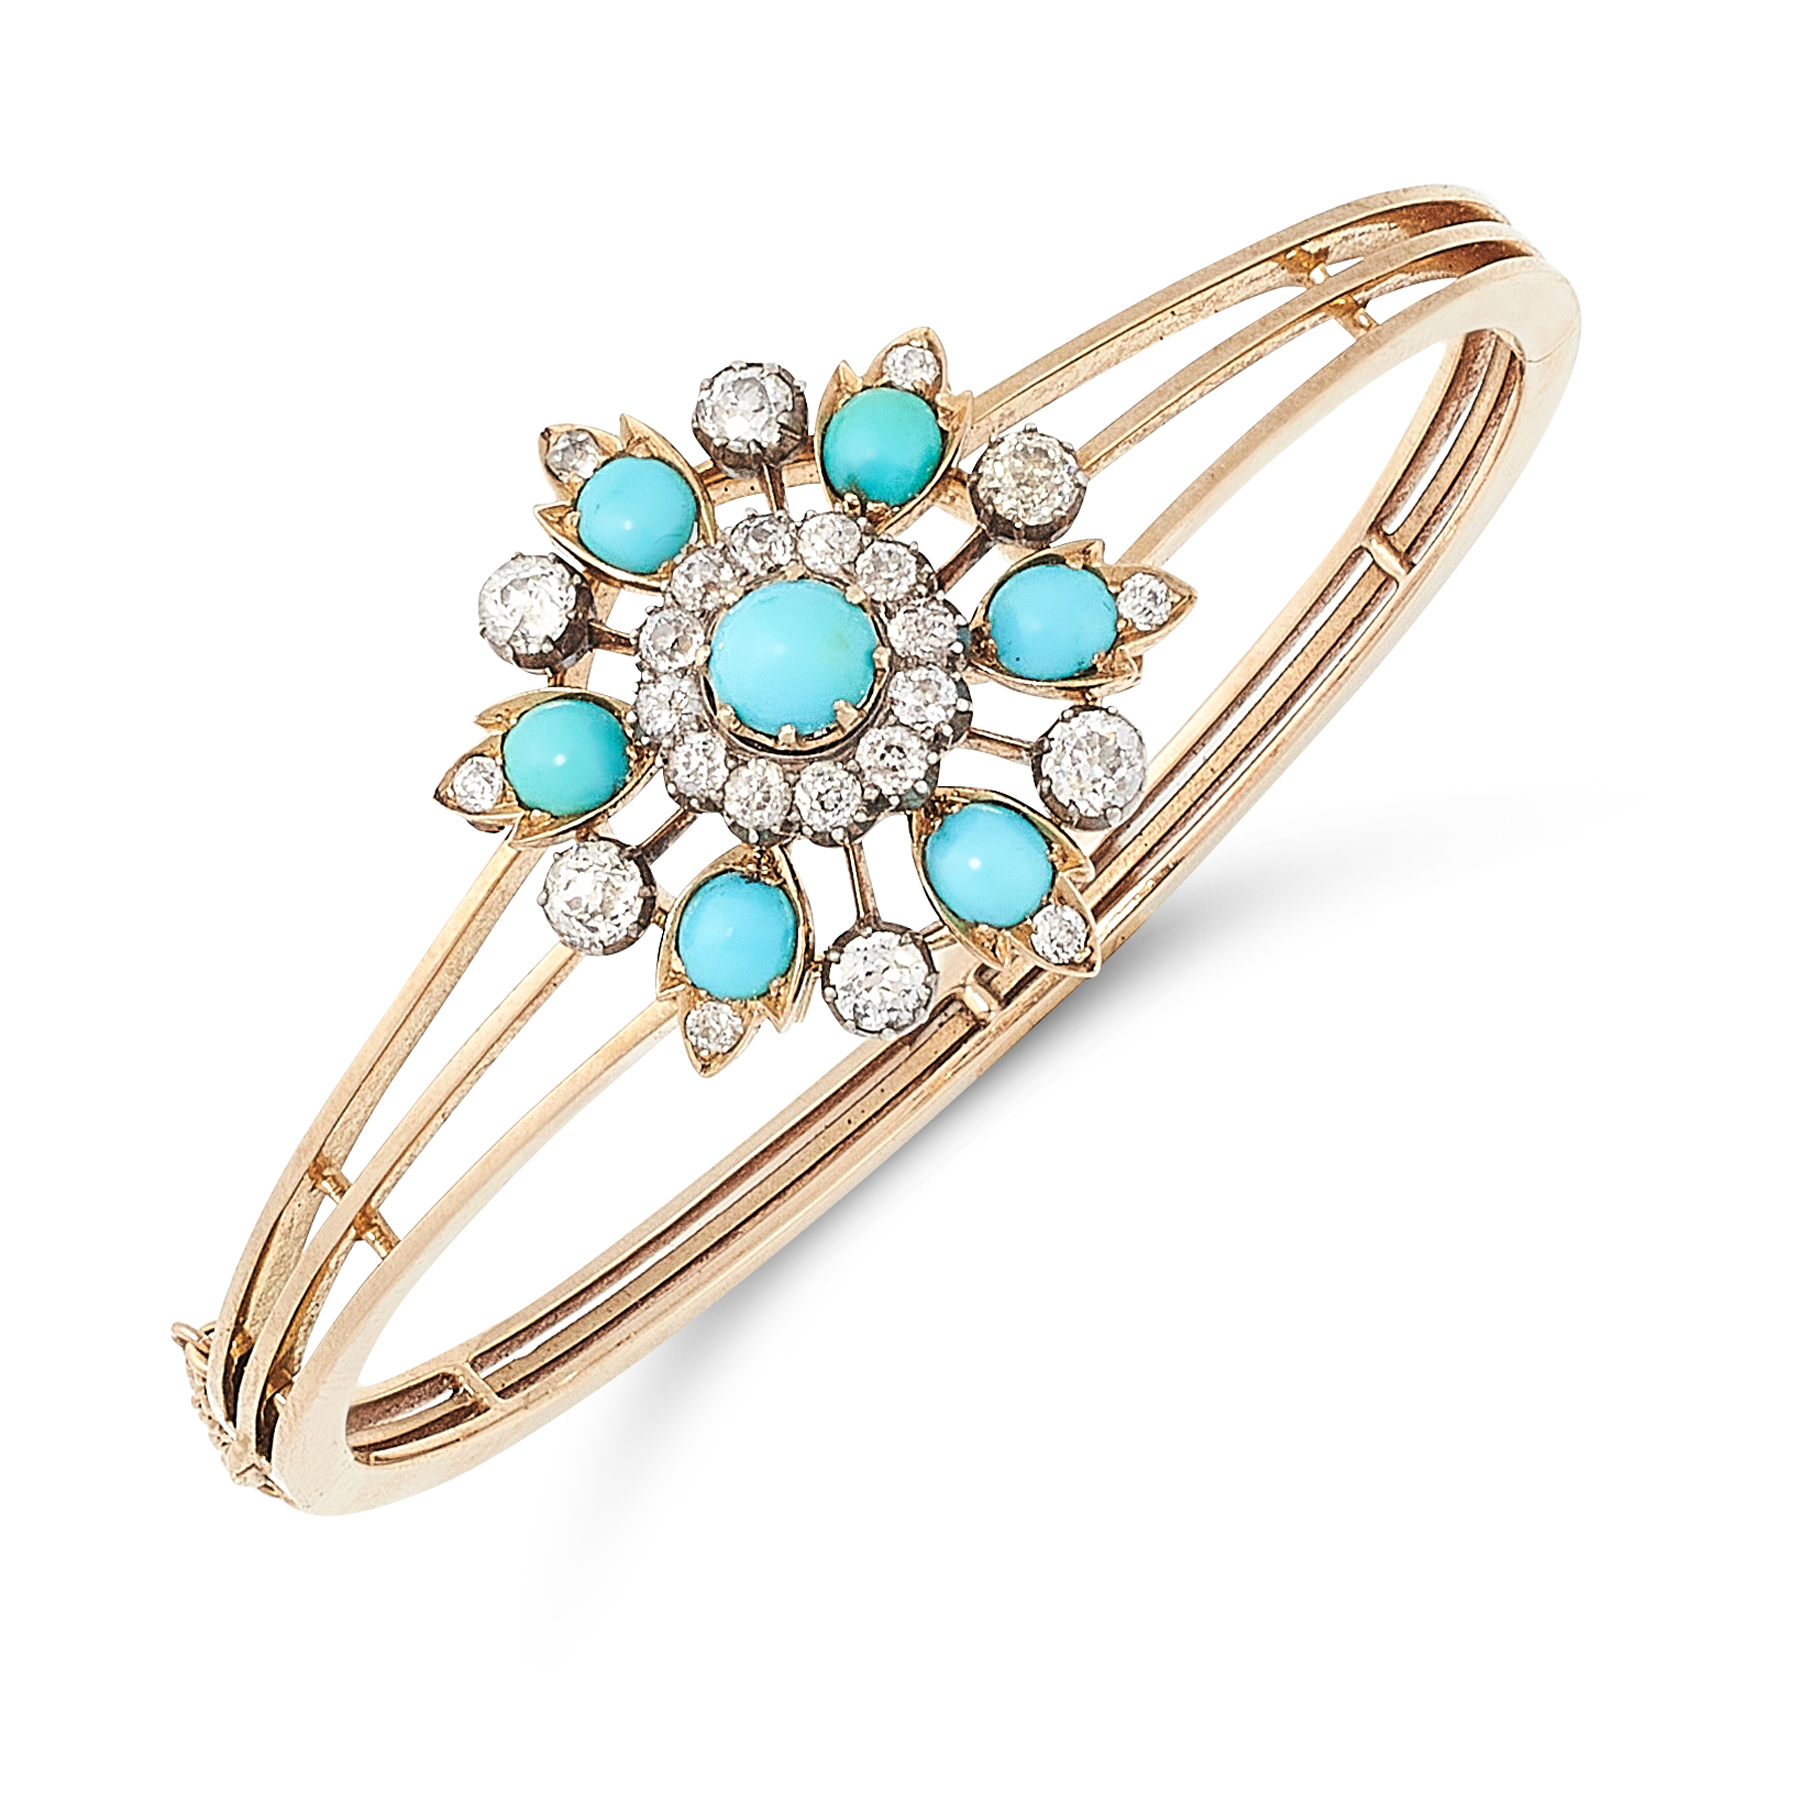 AN ANTIQUE TURQUOISE AND DIAMOND BANGLE / PENDANT / BROOCH in high carat yellow gold, designed as